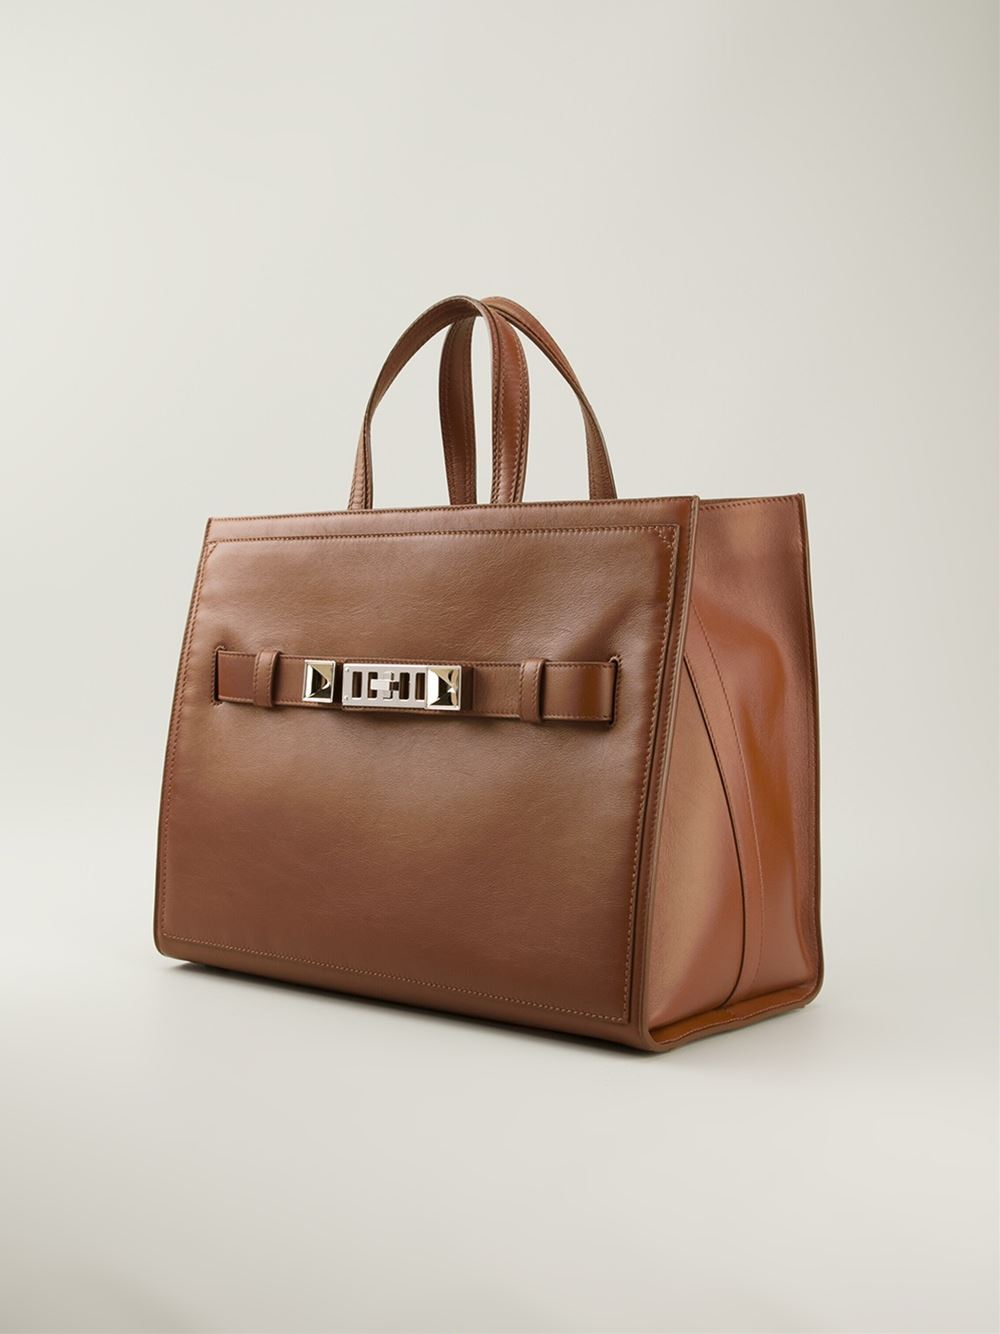 Proenza Schouler Large Ps11 Tote in Brown